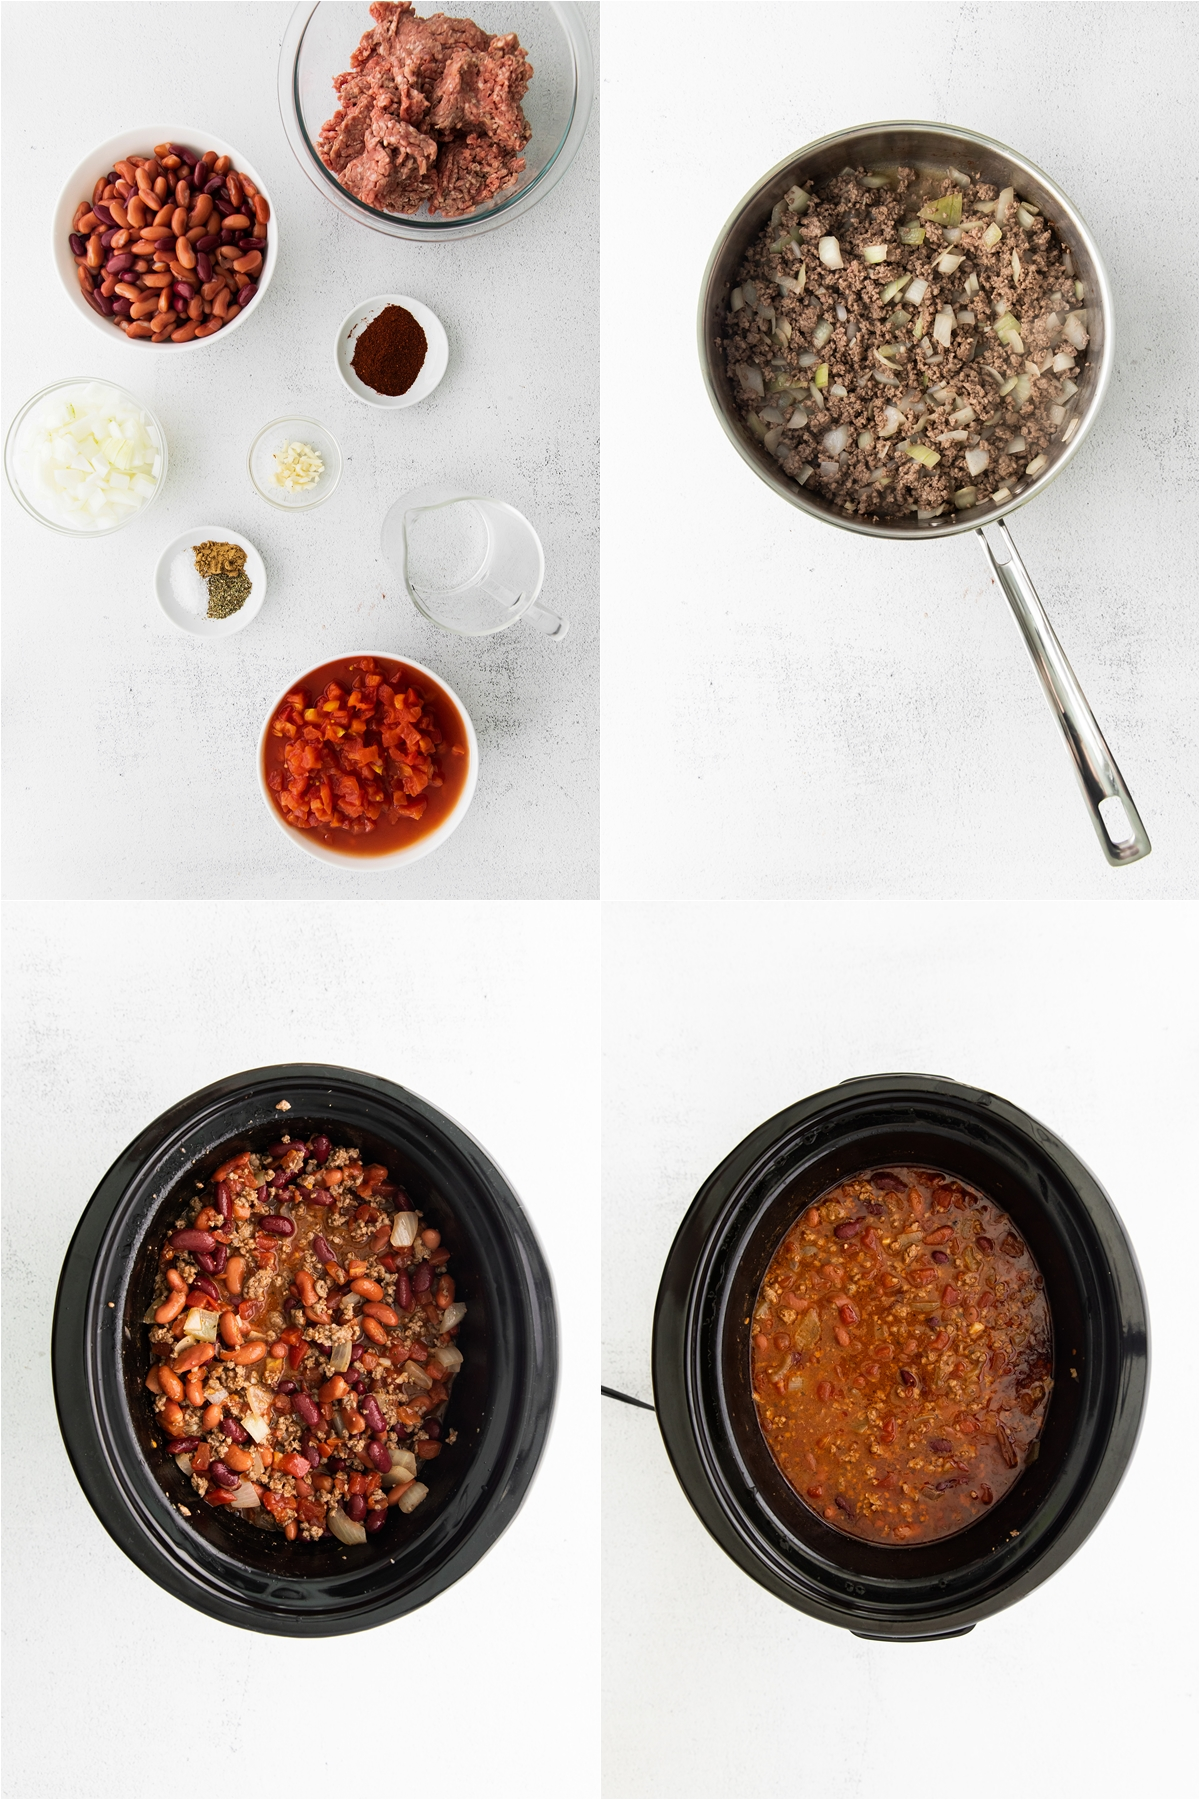 Process of Easy Slow Cooker Chili recipe with ground beef, chopped onions, and minced garlic on a skillet.